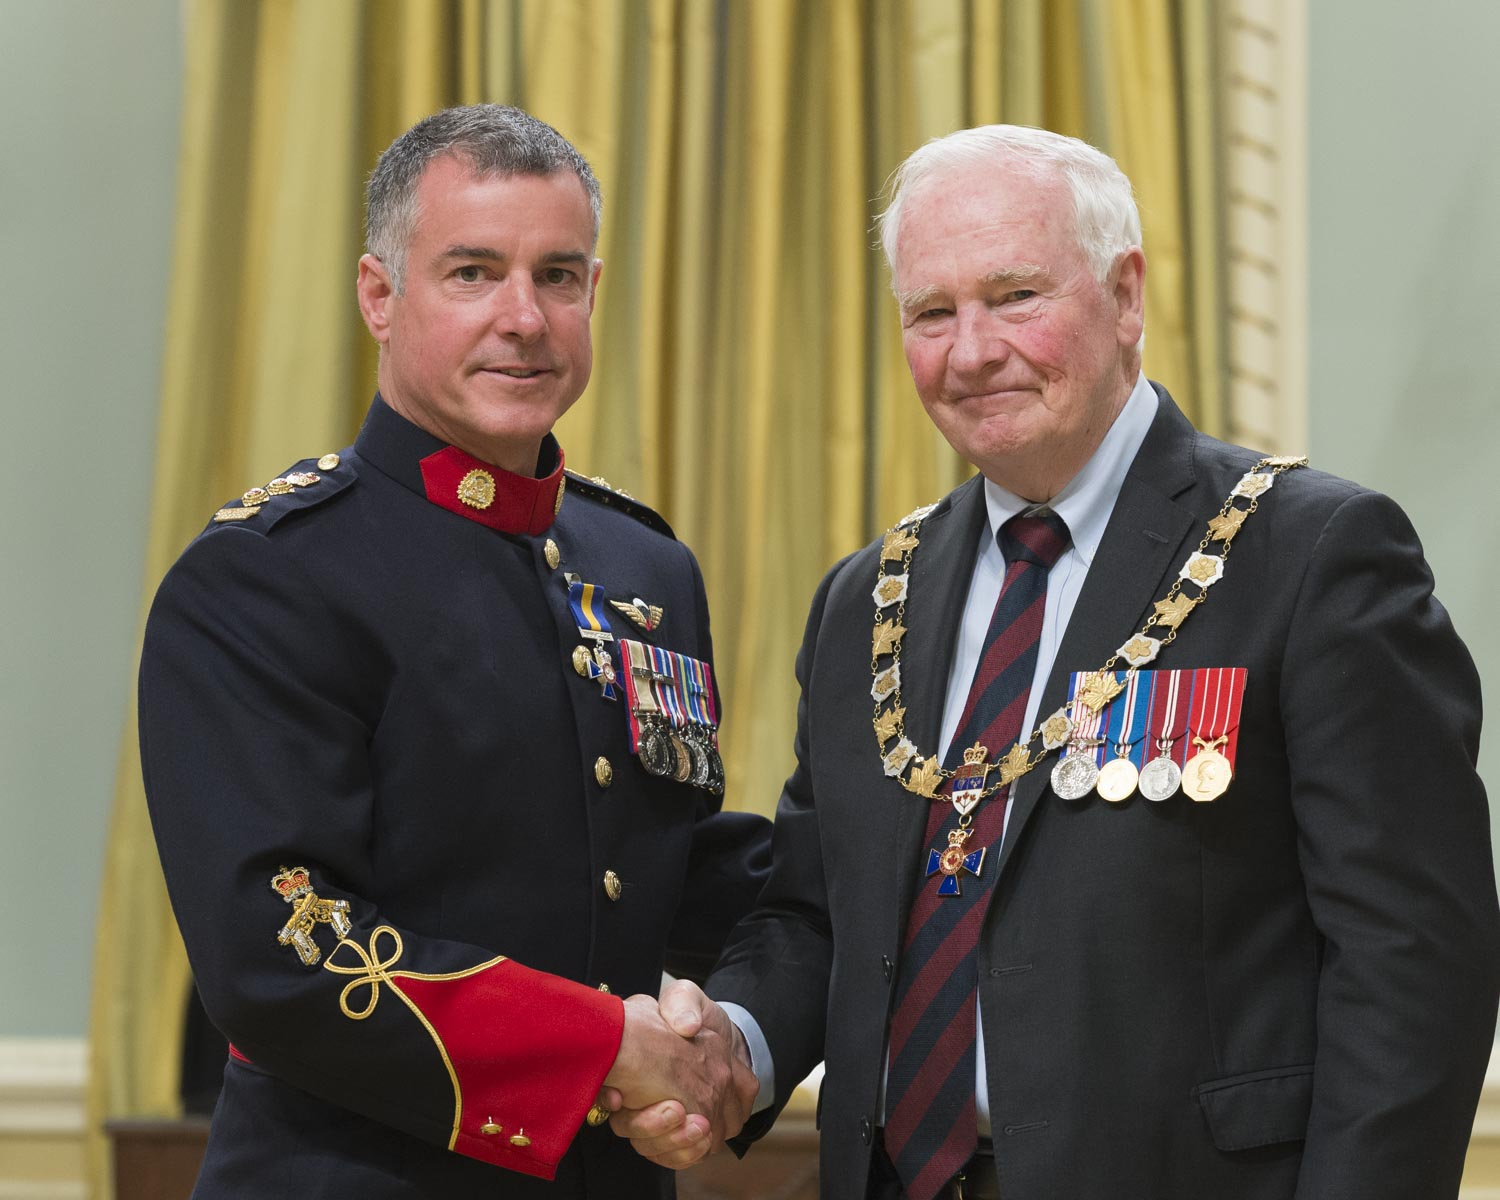 His Excellency presented the Order at the Member level to Superintendent Raymond Robitaille, M.O.M., of the Calgary Police Service, Alberta.